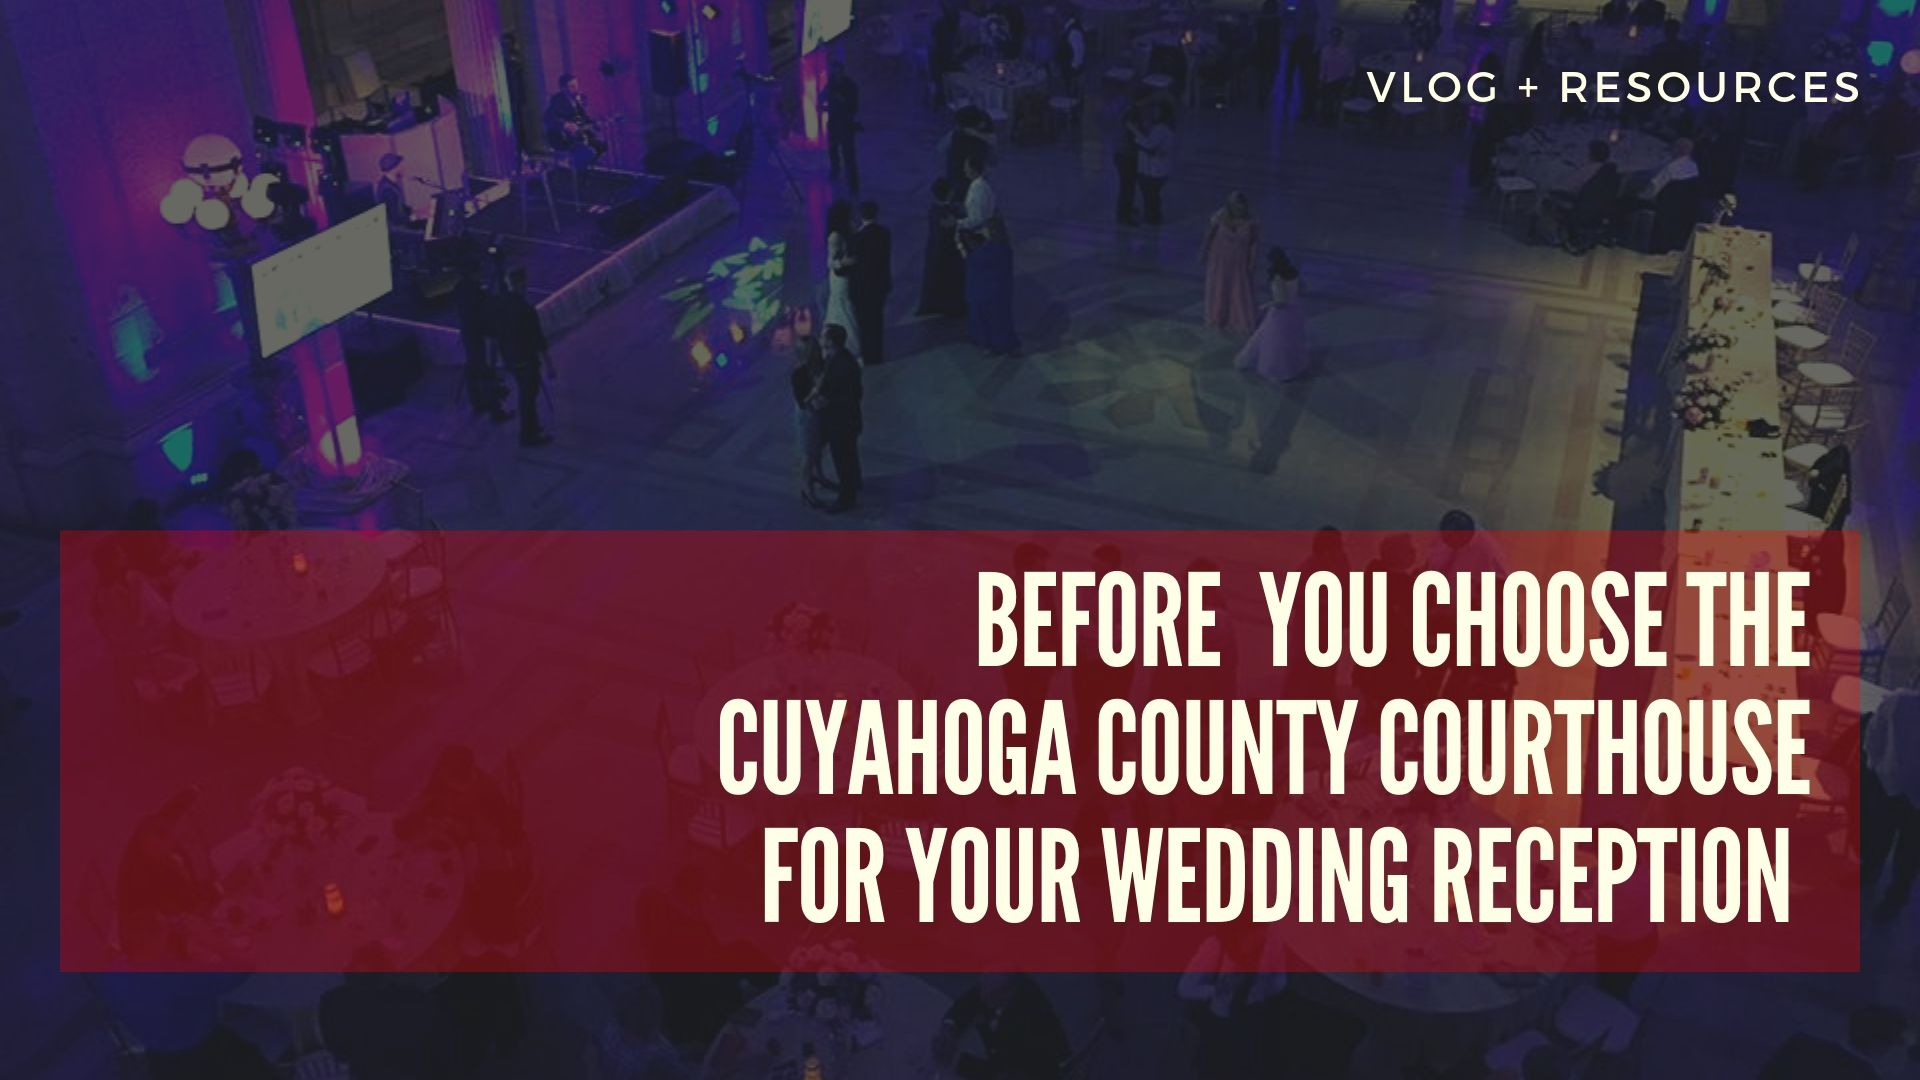 Tips for lighting, entertainment and more for Cuyahoga County Courthouse weddings.